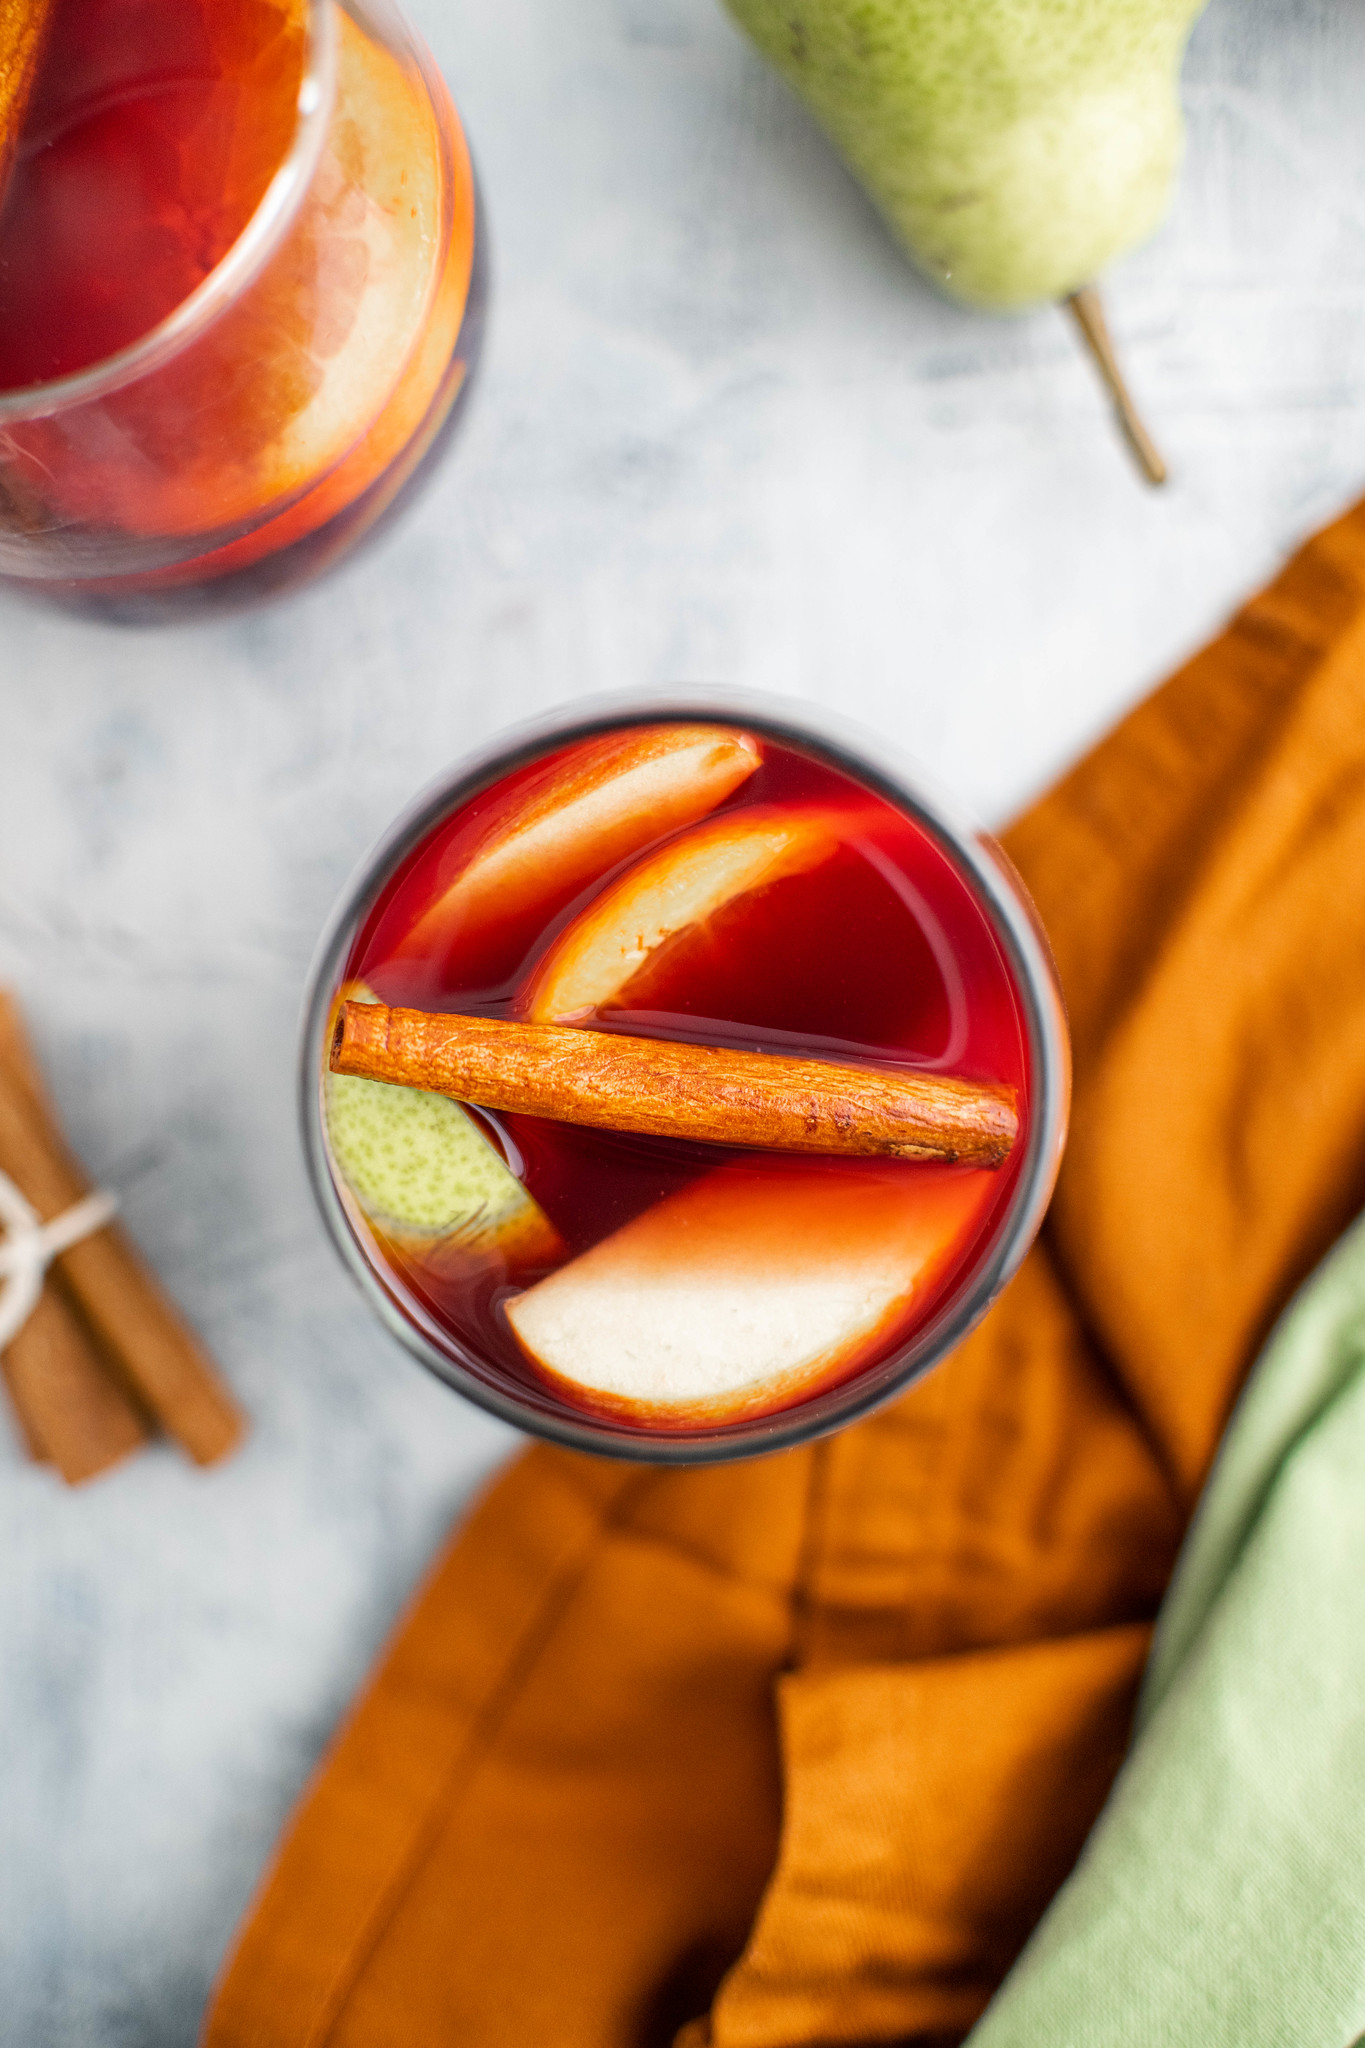 One glass of fall sangria in middle of photo with apples, pears, oranges and a cinnamon stick.